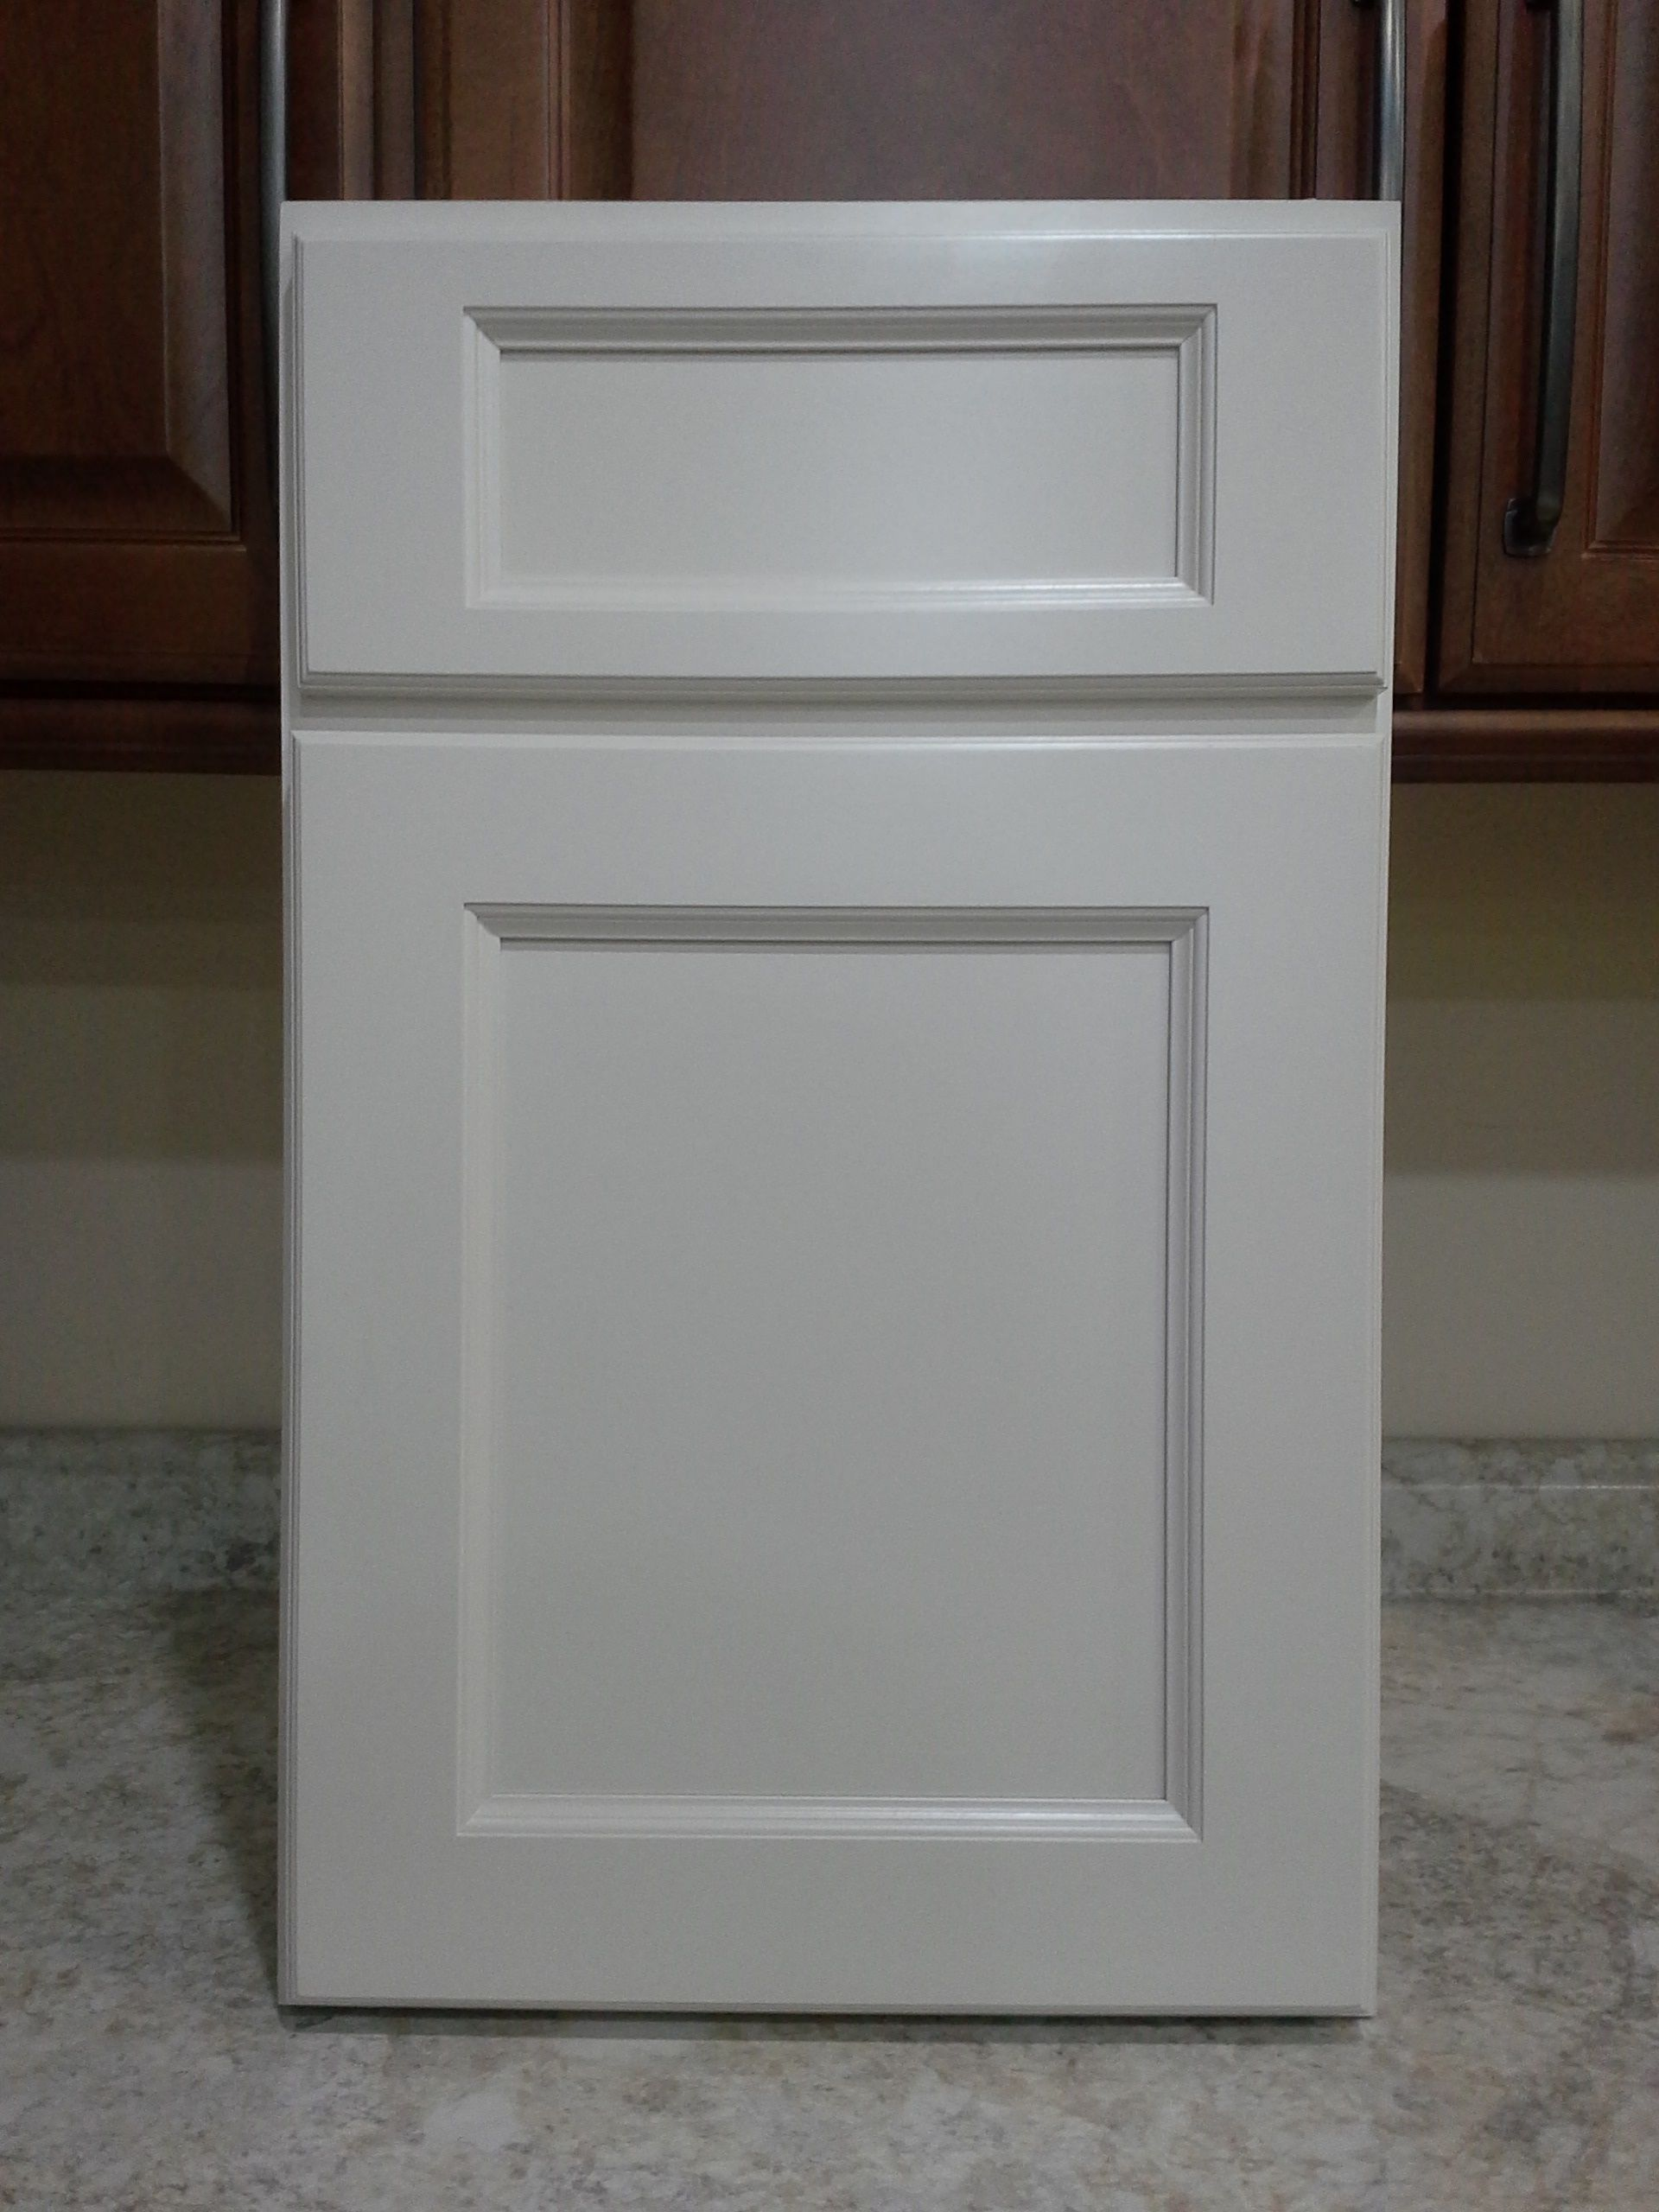 Acpi Echelon Addison Painting Cabinets Cabinetry Kitchen Design